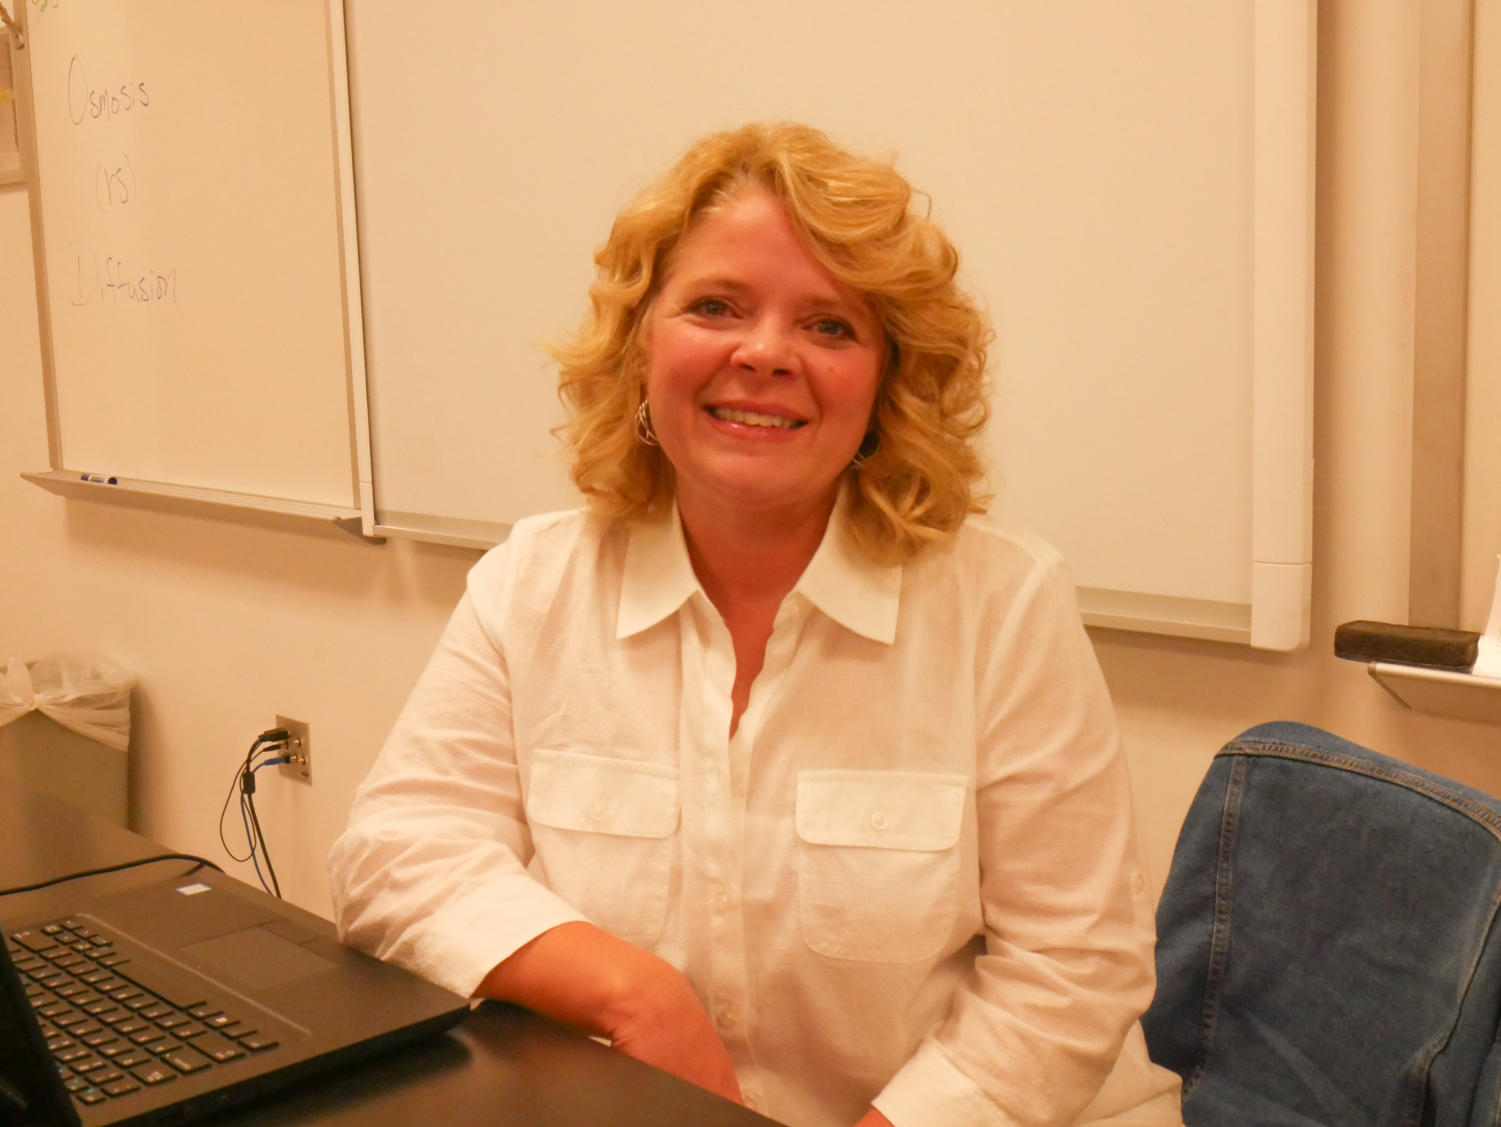 Ms. Muller is a new teacher at Liberty and already has made a good impression on many students and staff members.